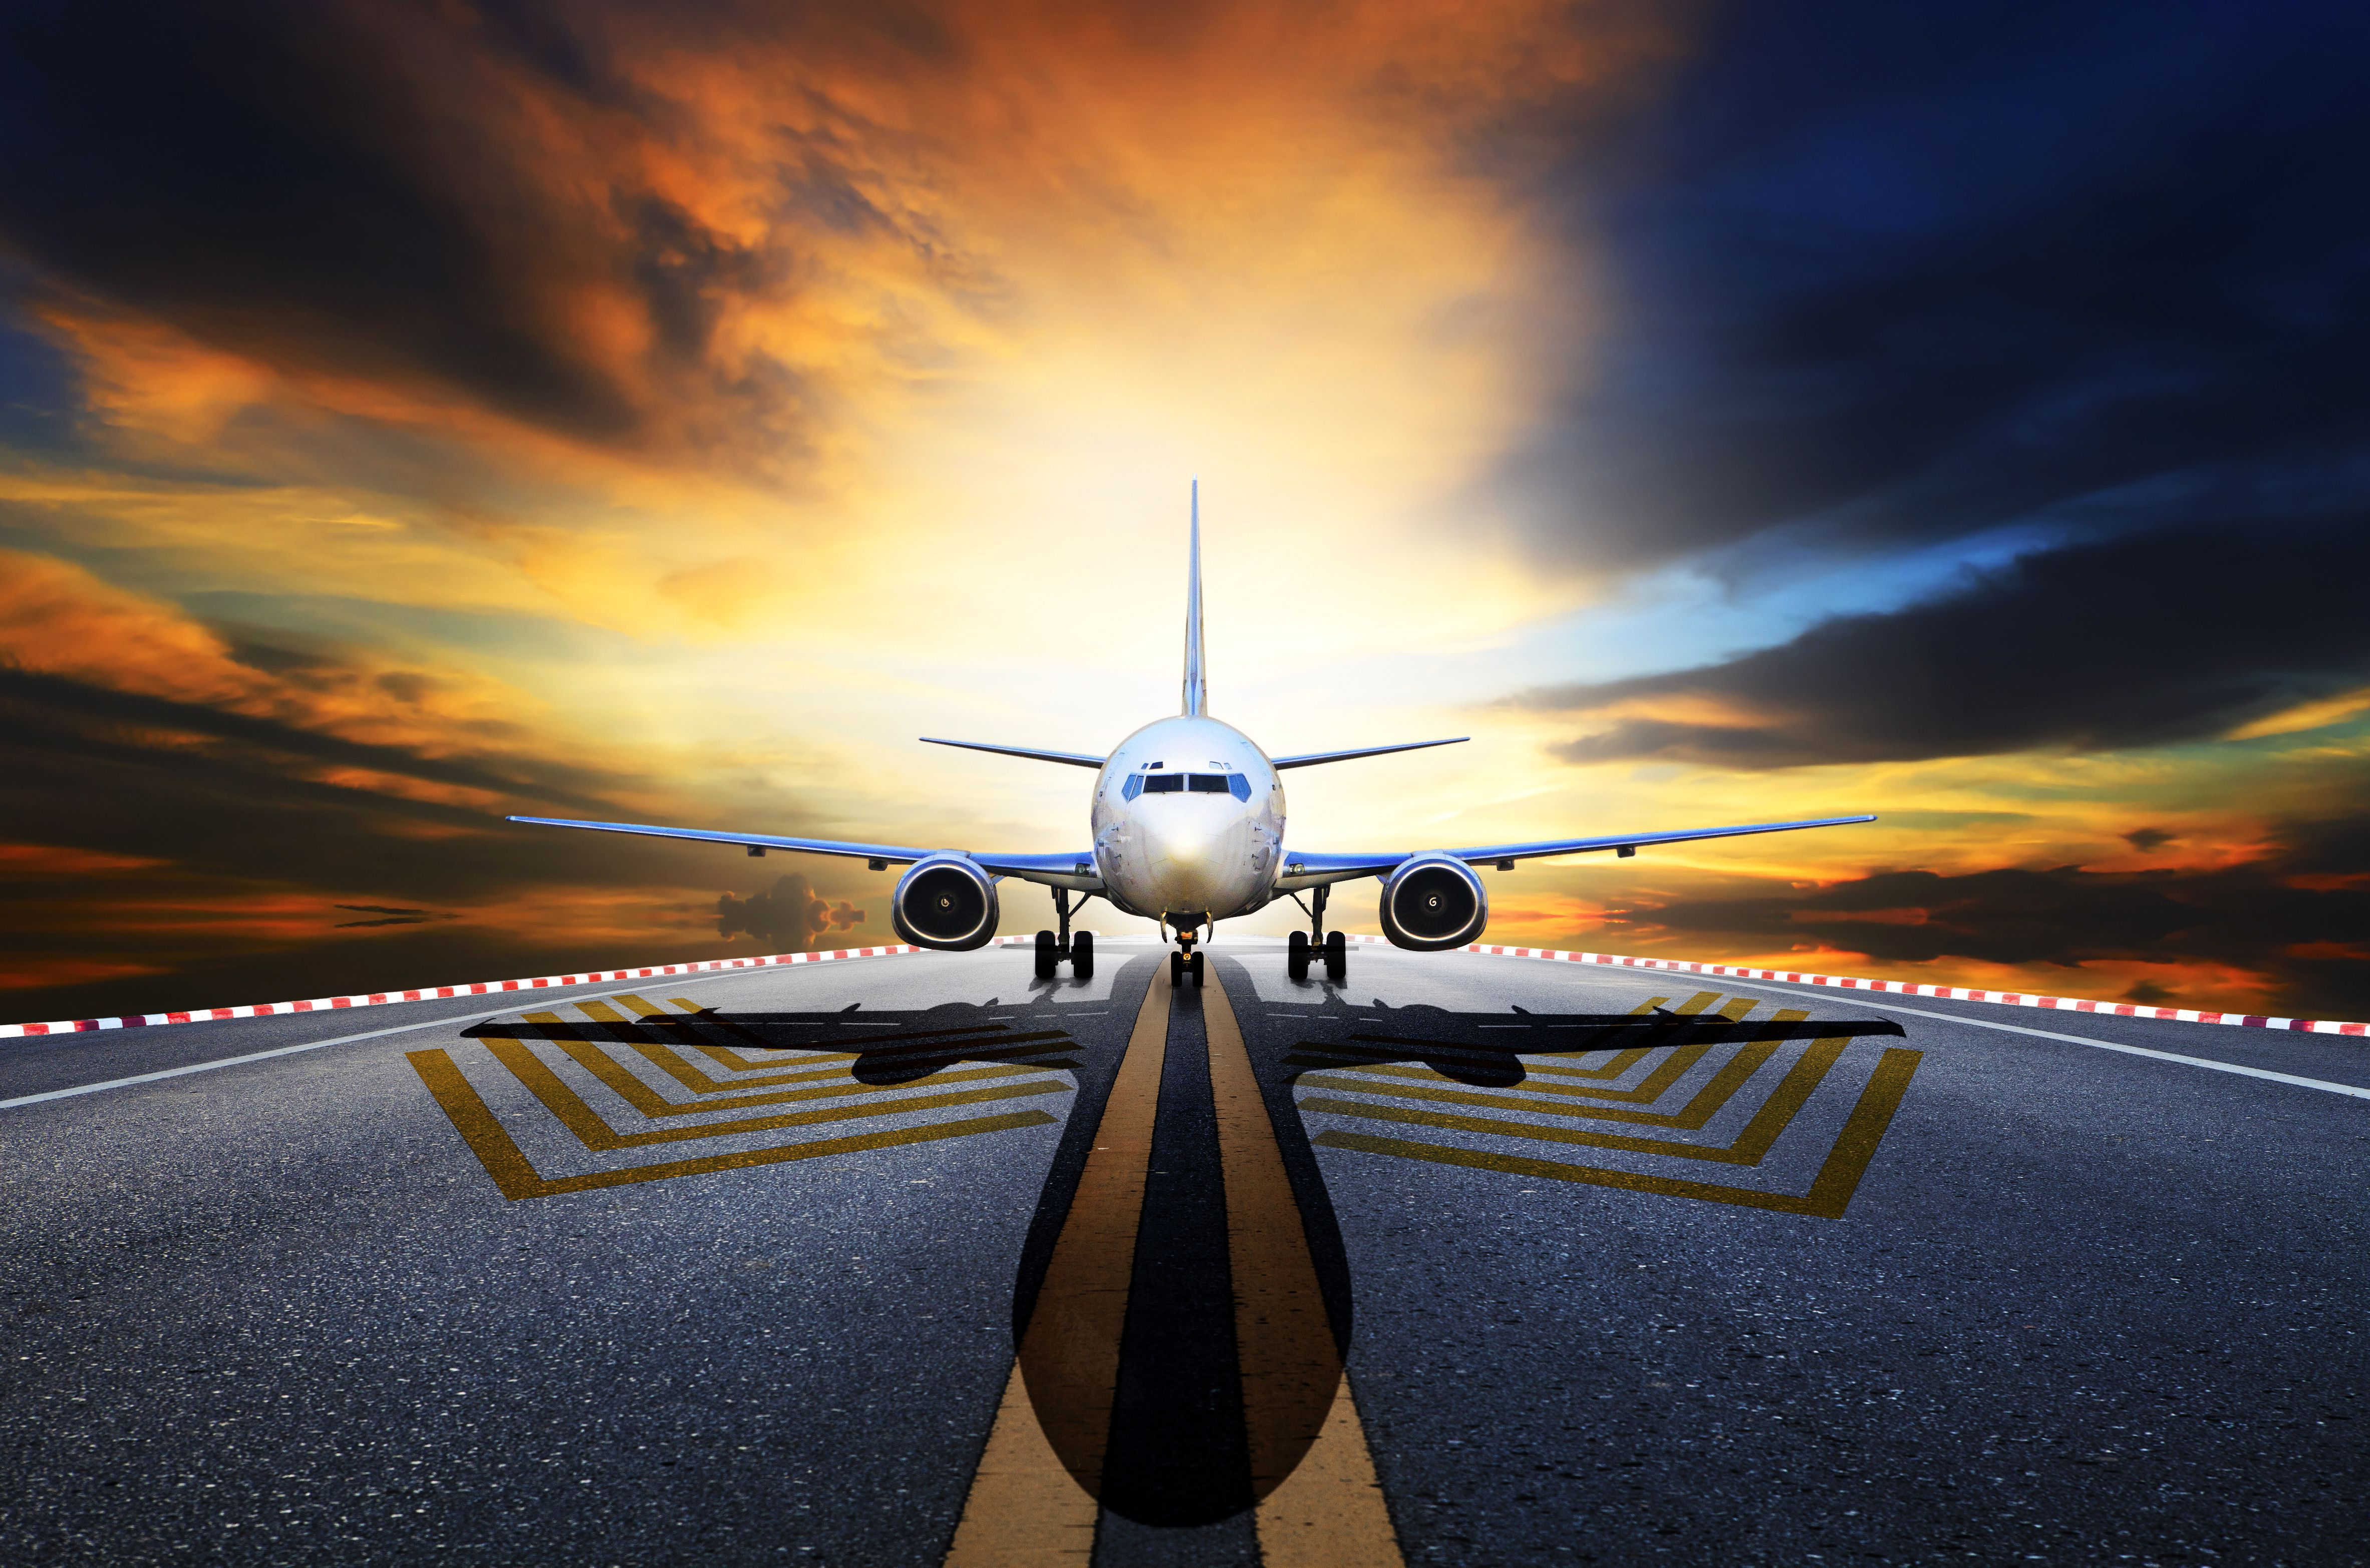 Passenger Jet Plane Preparing To Take Off From Airport Runways Against Beautiful Dusky Sky